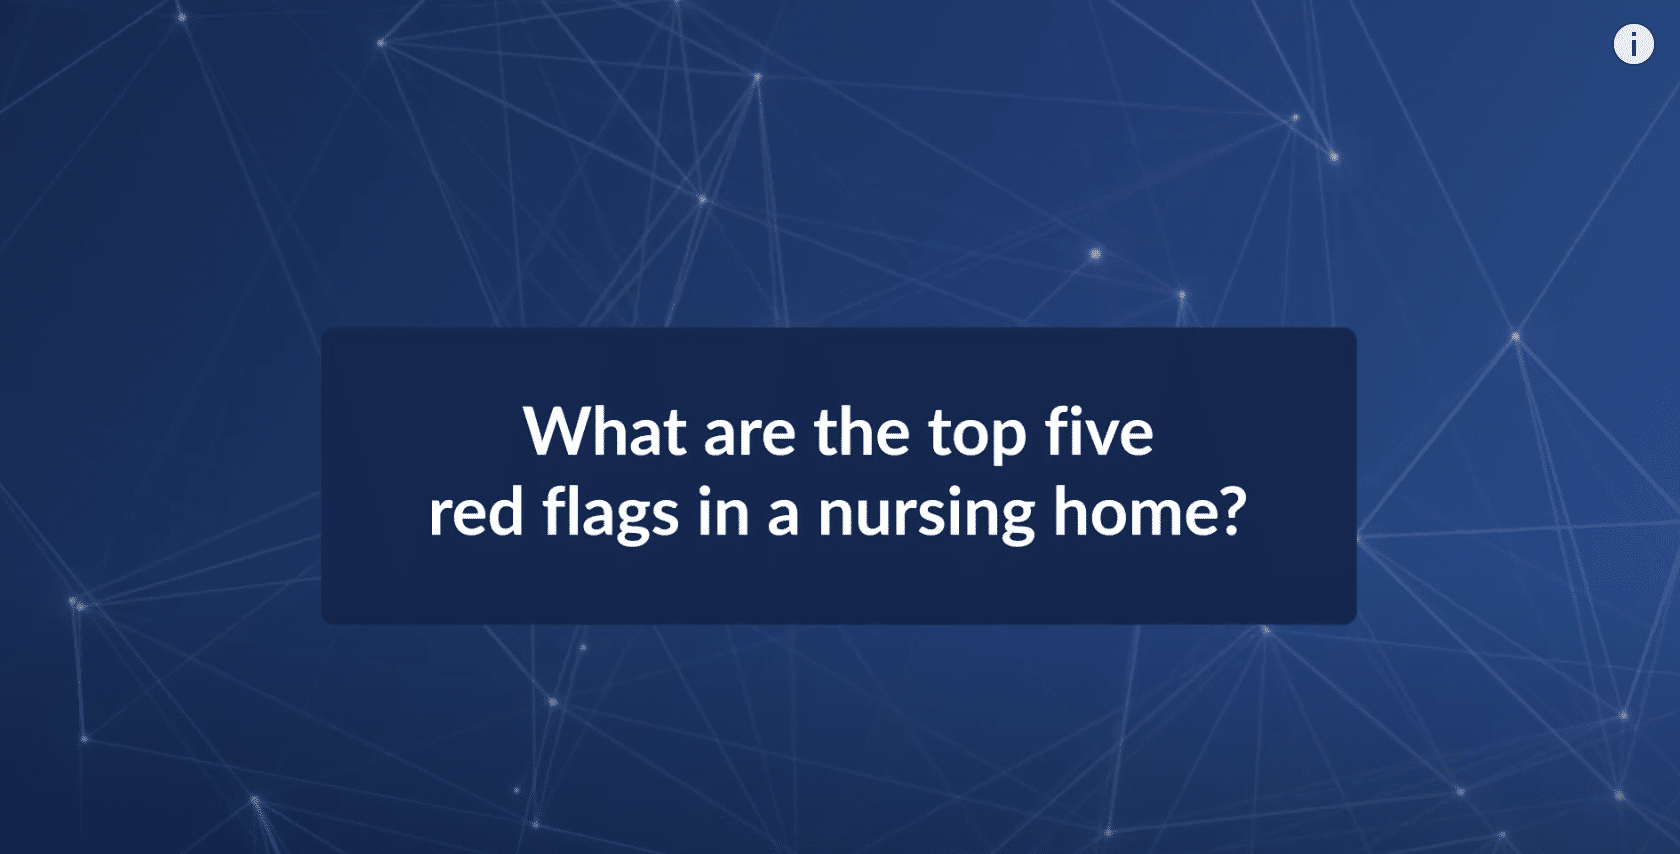 The Top Five Red Flags To Look for When Selecting a Nursing Home